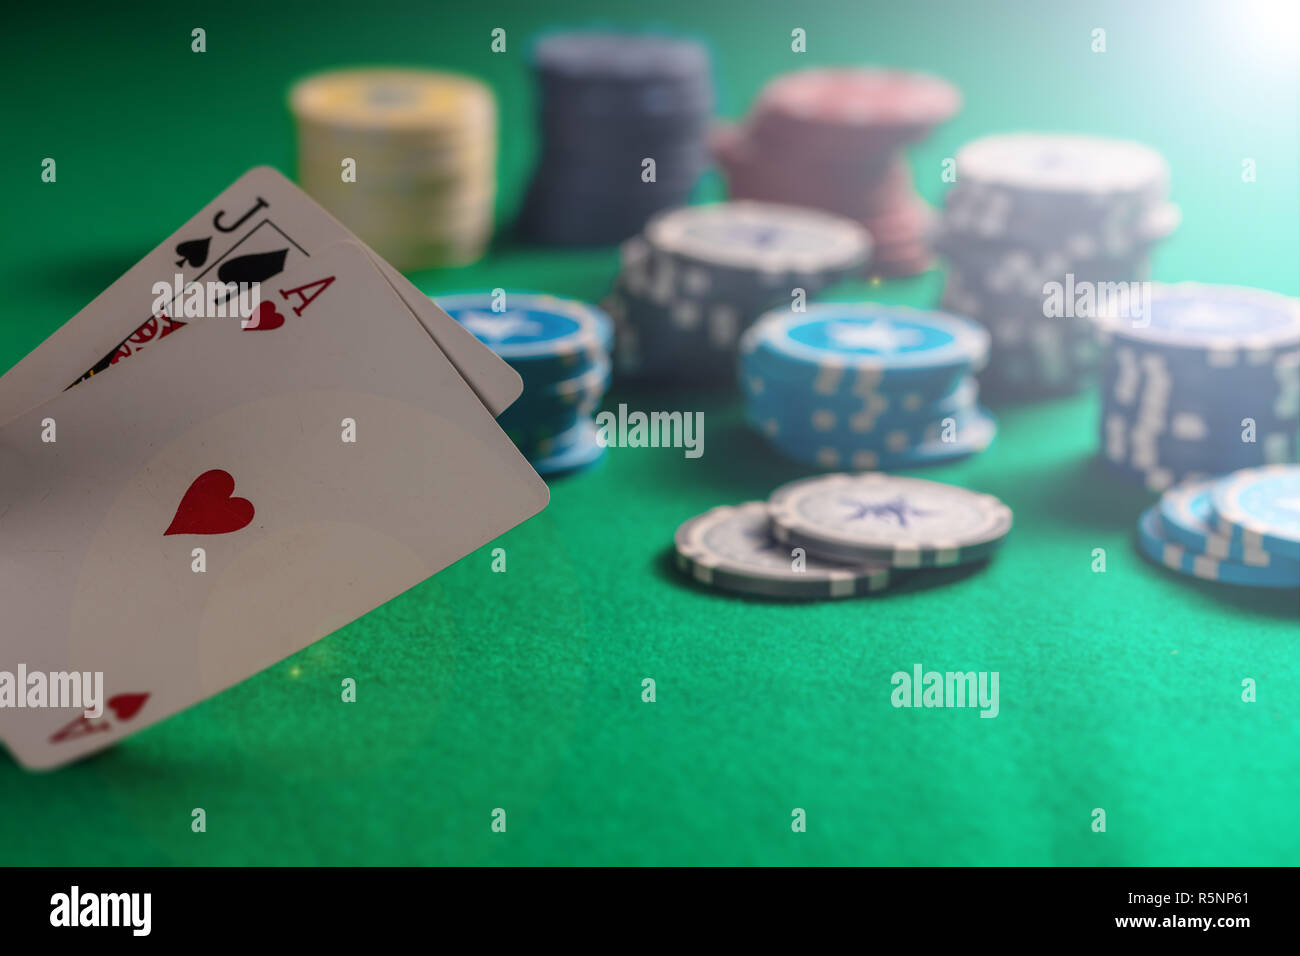 Casino, gambling concept. Blackjack and poker chips on green felt background - Stock Image